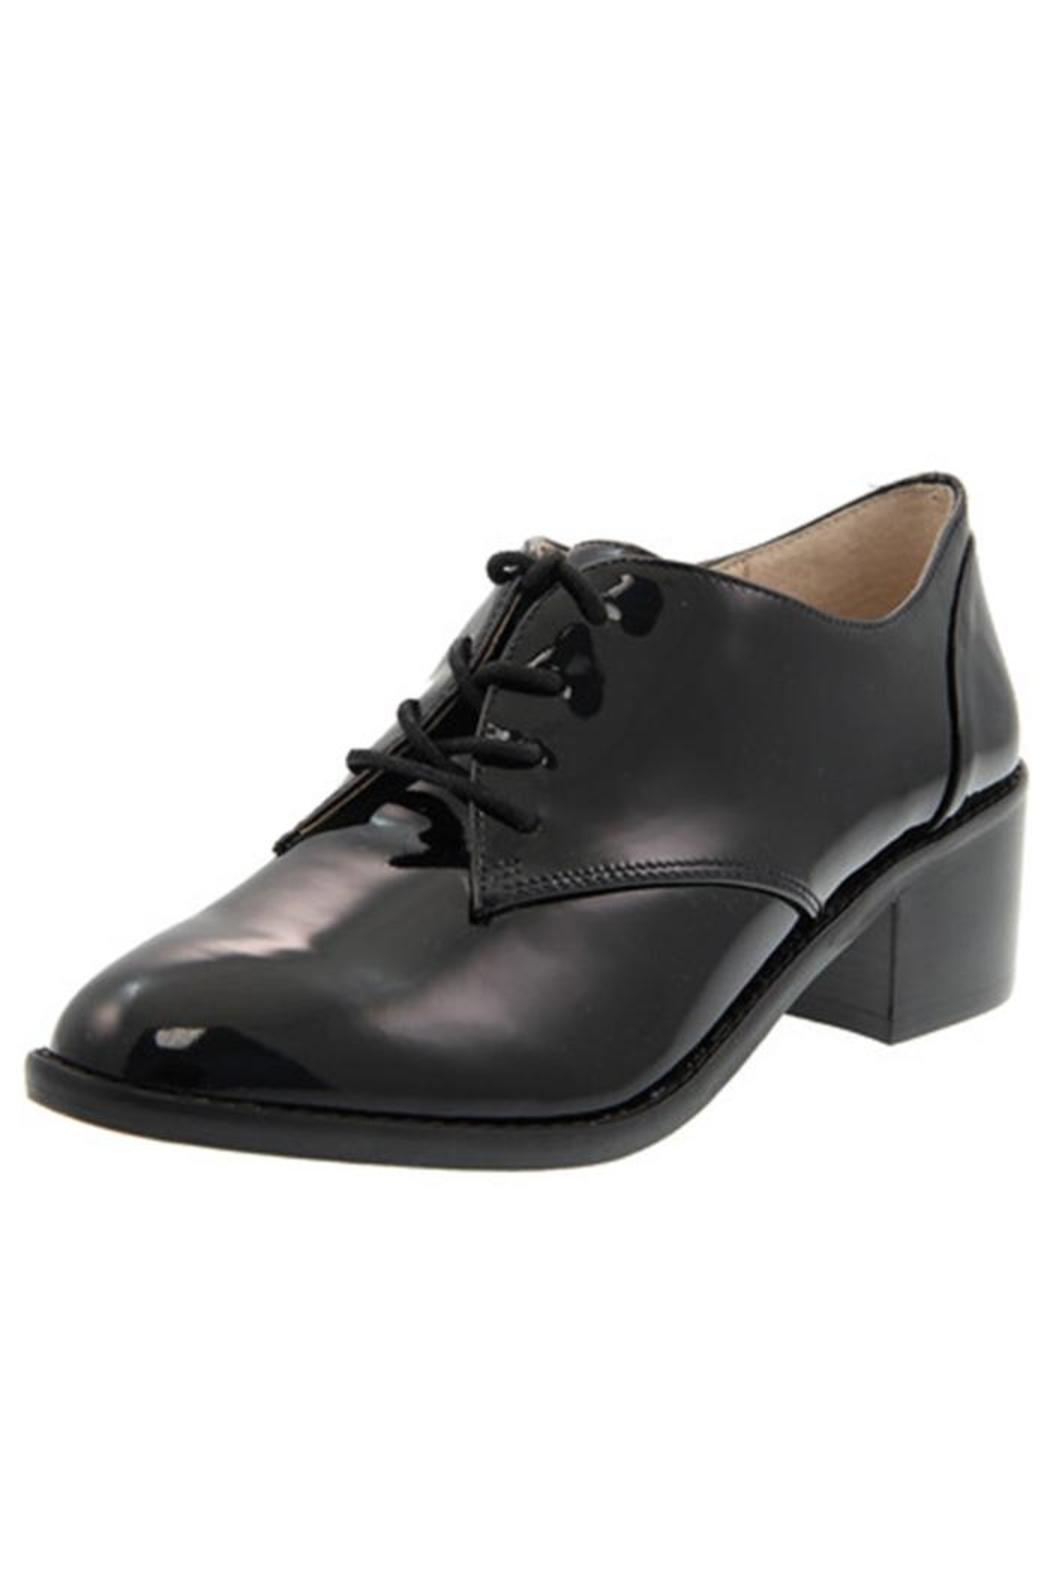 Louise Et Cie Finch Oxford From Toronto By Heel Boy